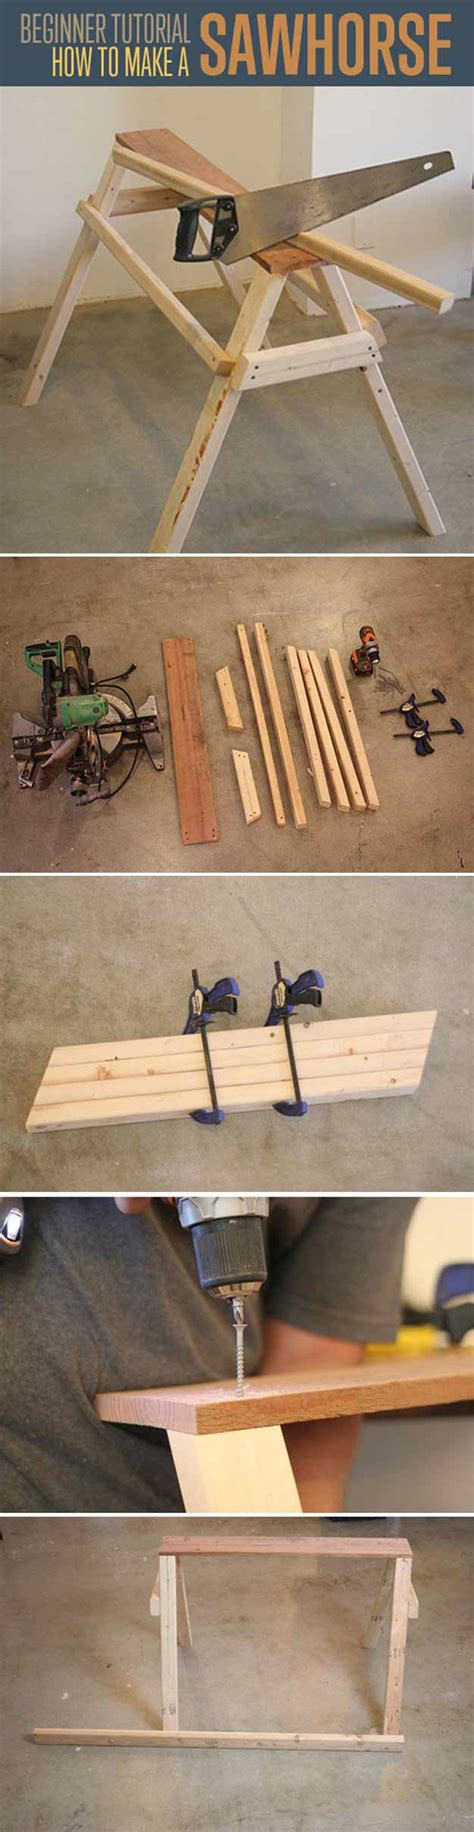 wood craft projects for beginners easy woodworking projects listsy